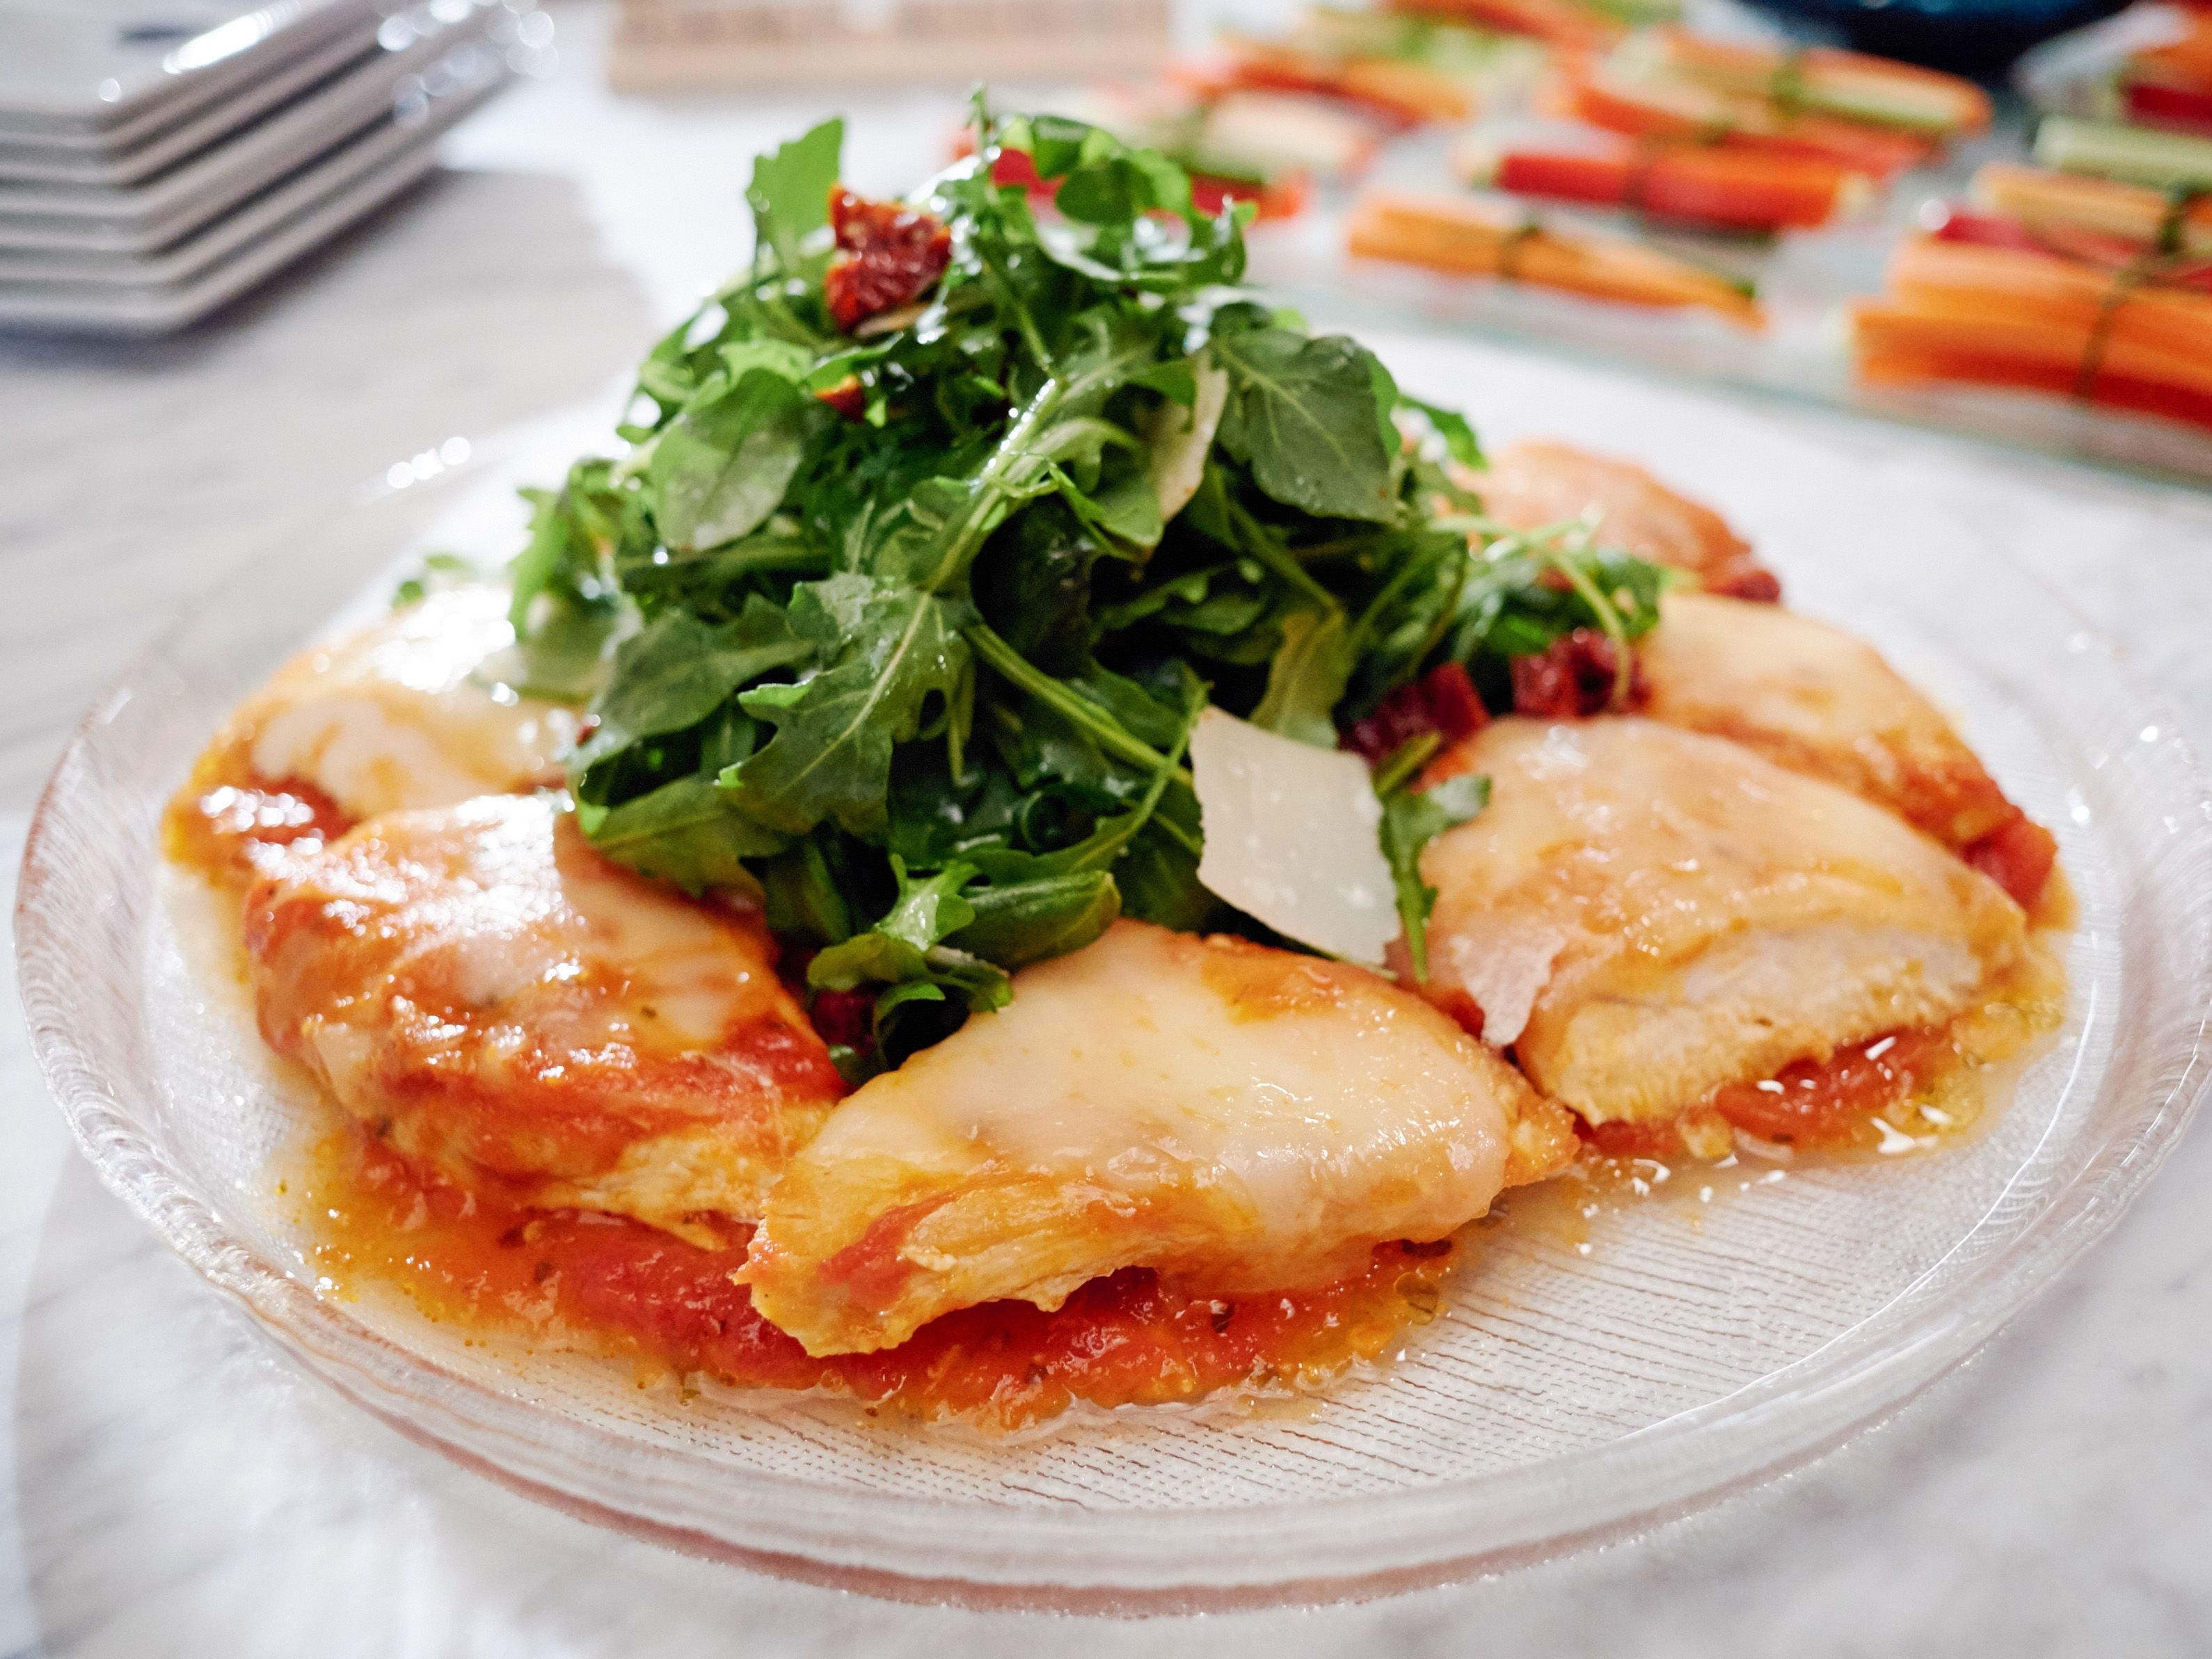 Warm chicken parmesan salad recipe giada de laurentiis parmesan warm chicken parmesan salad recipe giada de laurentiis parmesan and salad forumfinder Choice Image